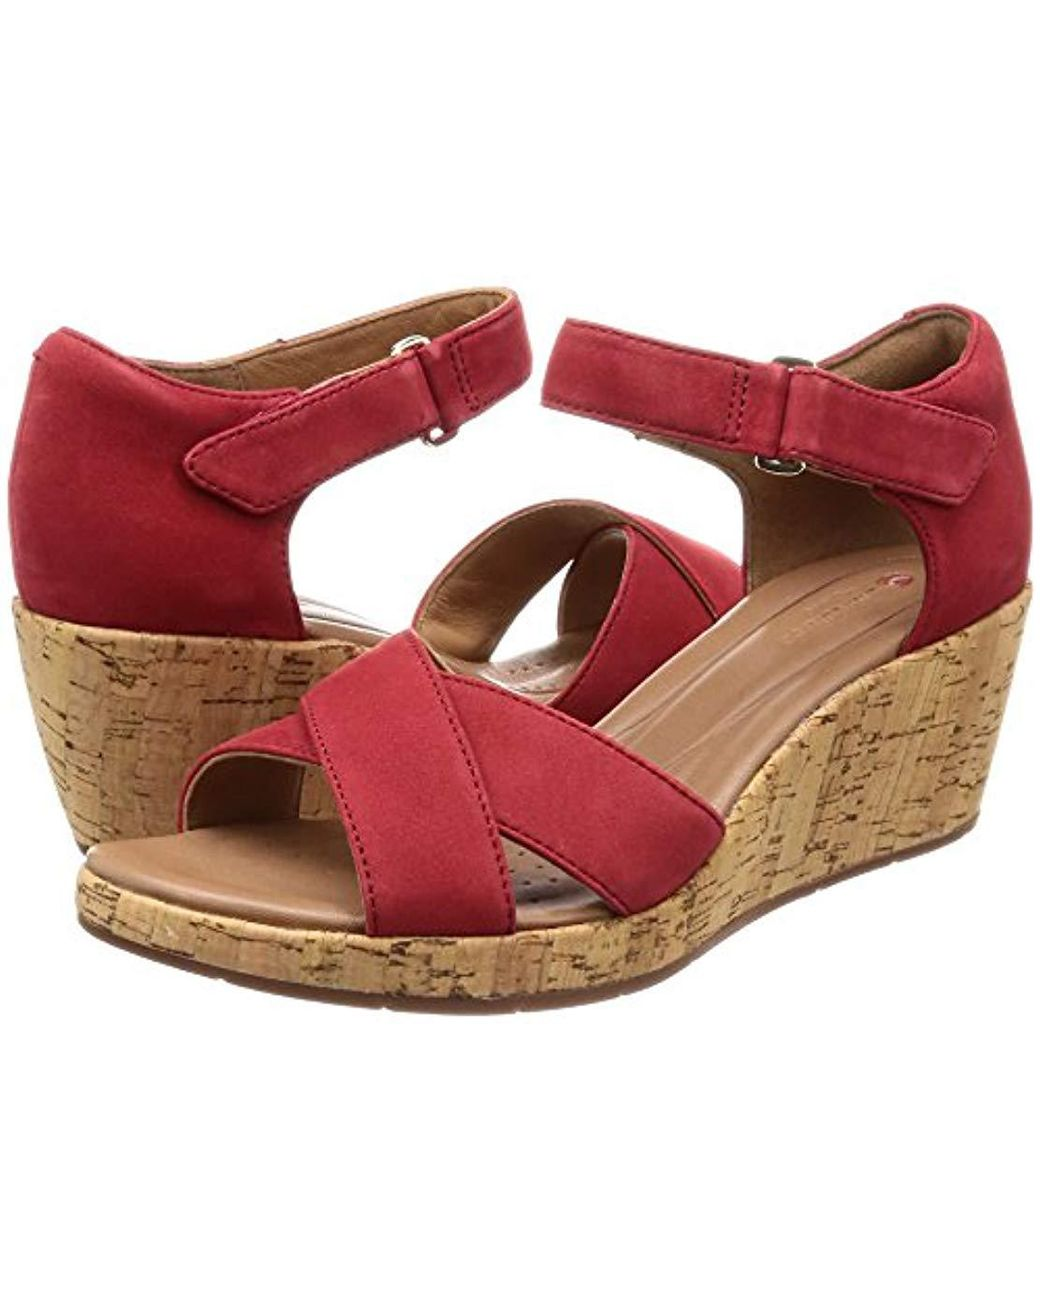 b15644cd5e5 Clarks  s Un Plaza Cross Ankle Strap Sandals in Red - Save 56% - Lyst